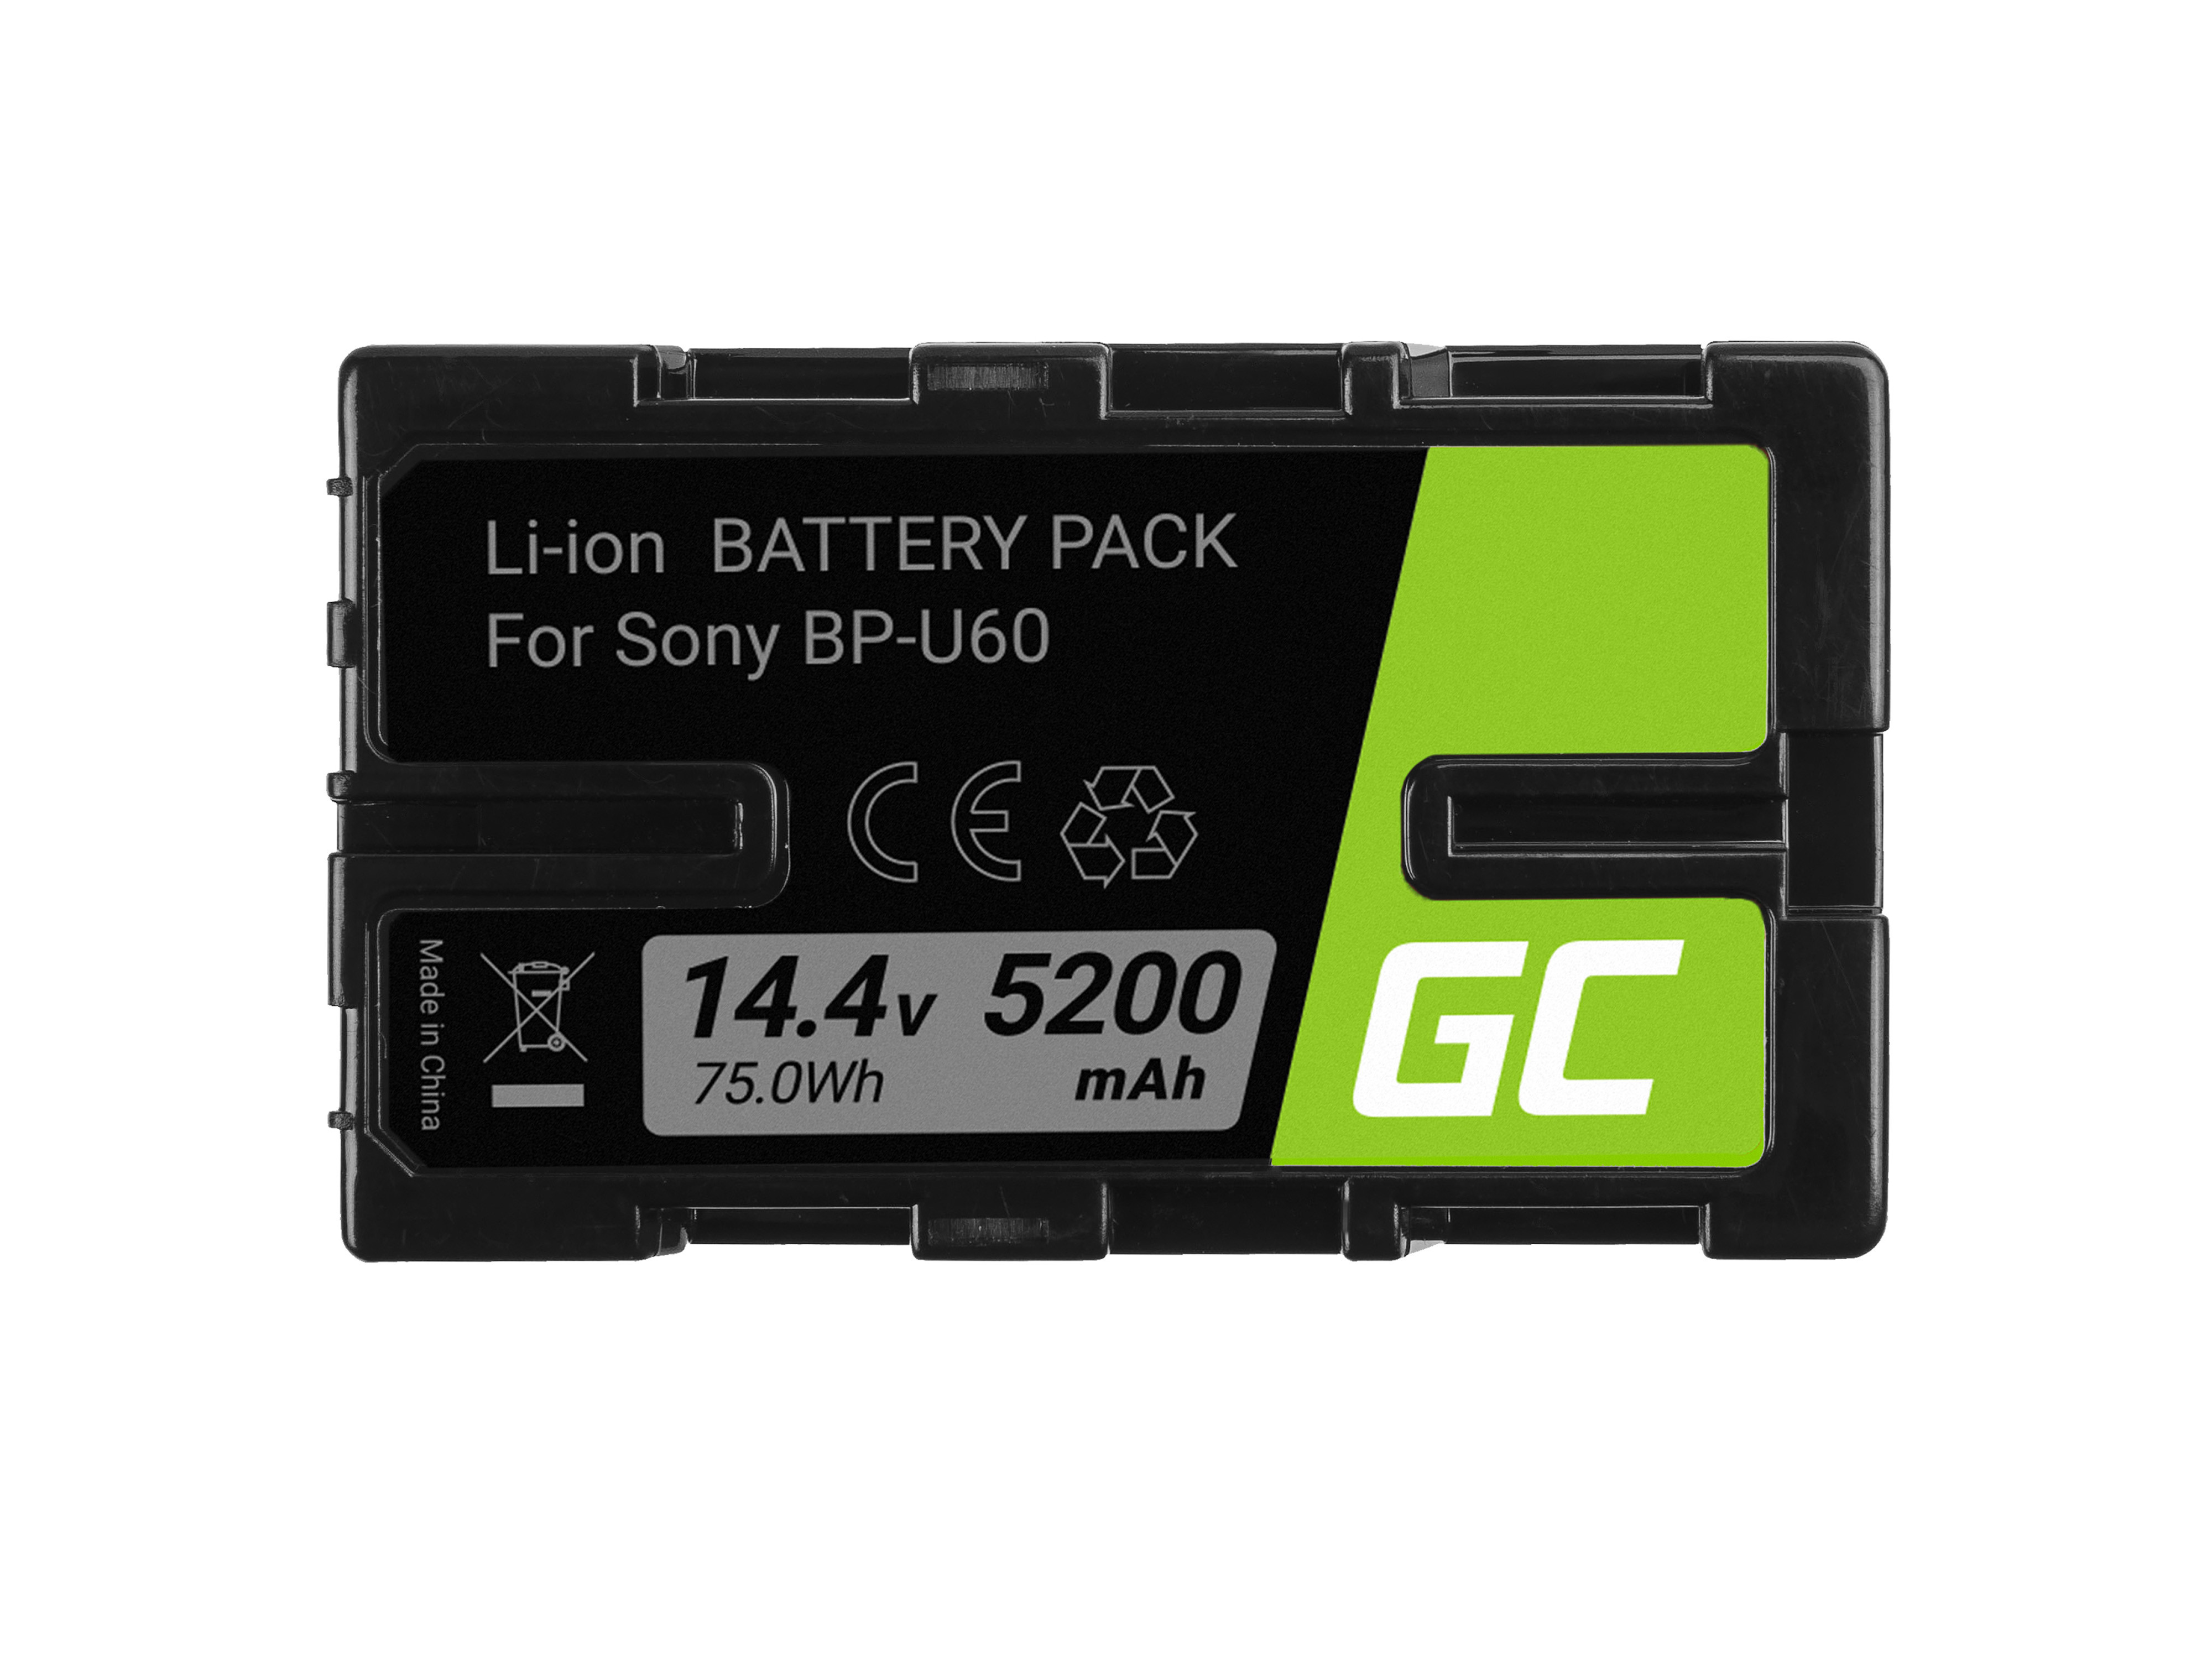 Battery Green Cell BP-U90 BP-U60 BP-U30 for Sony 5200mAh 75Wh 14.4V